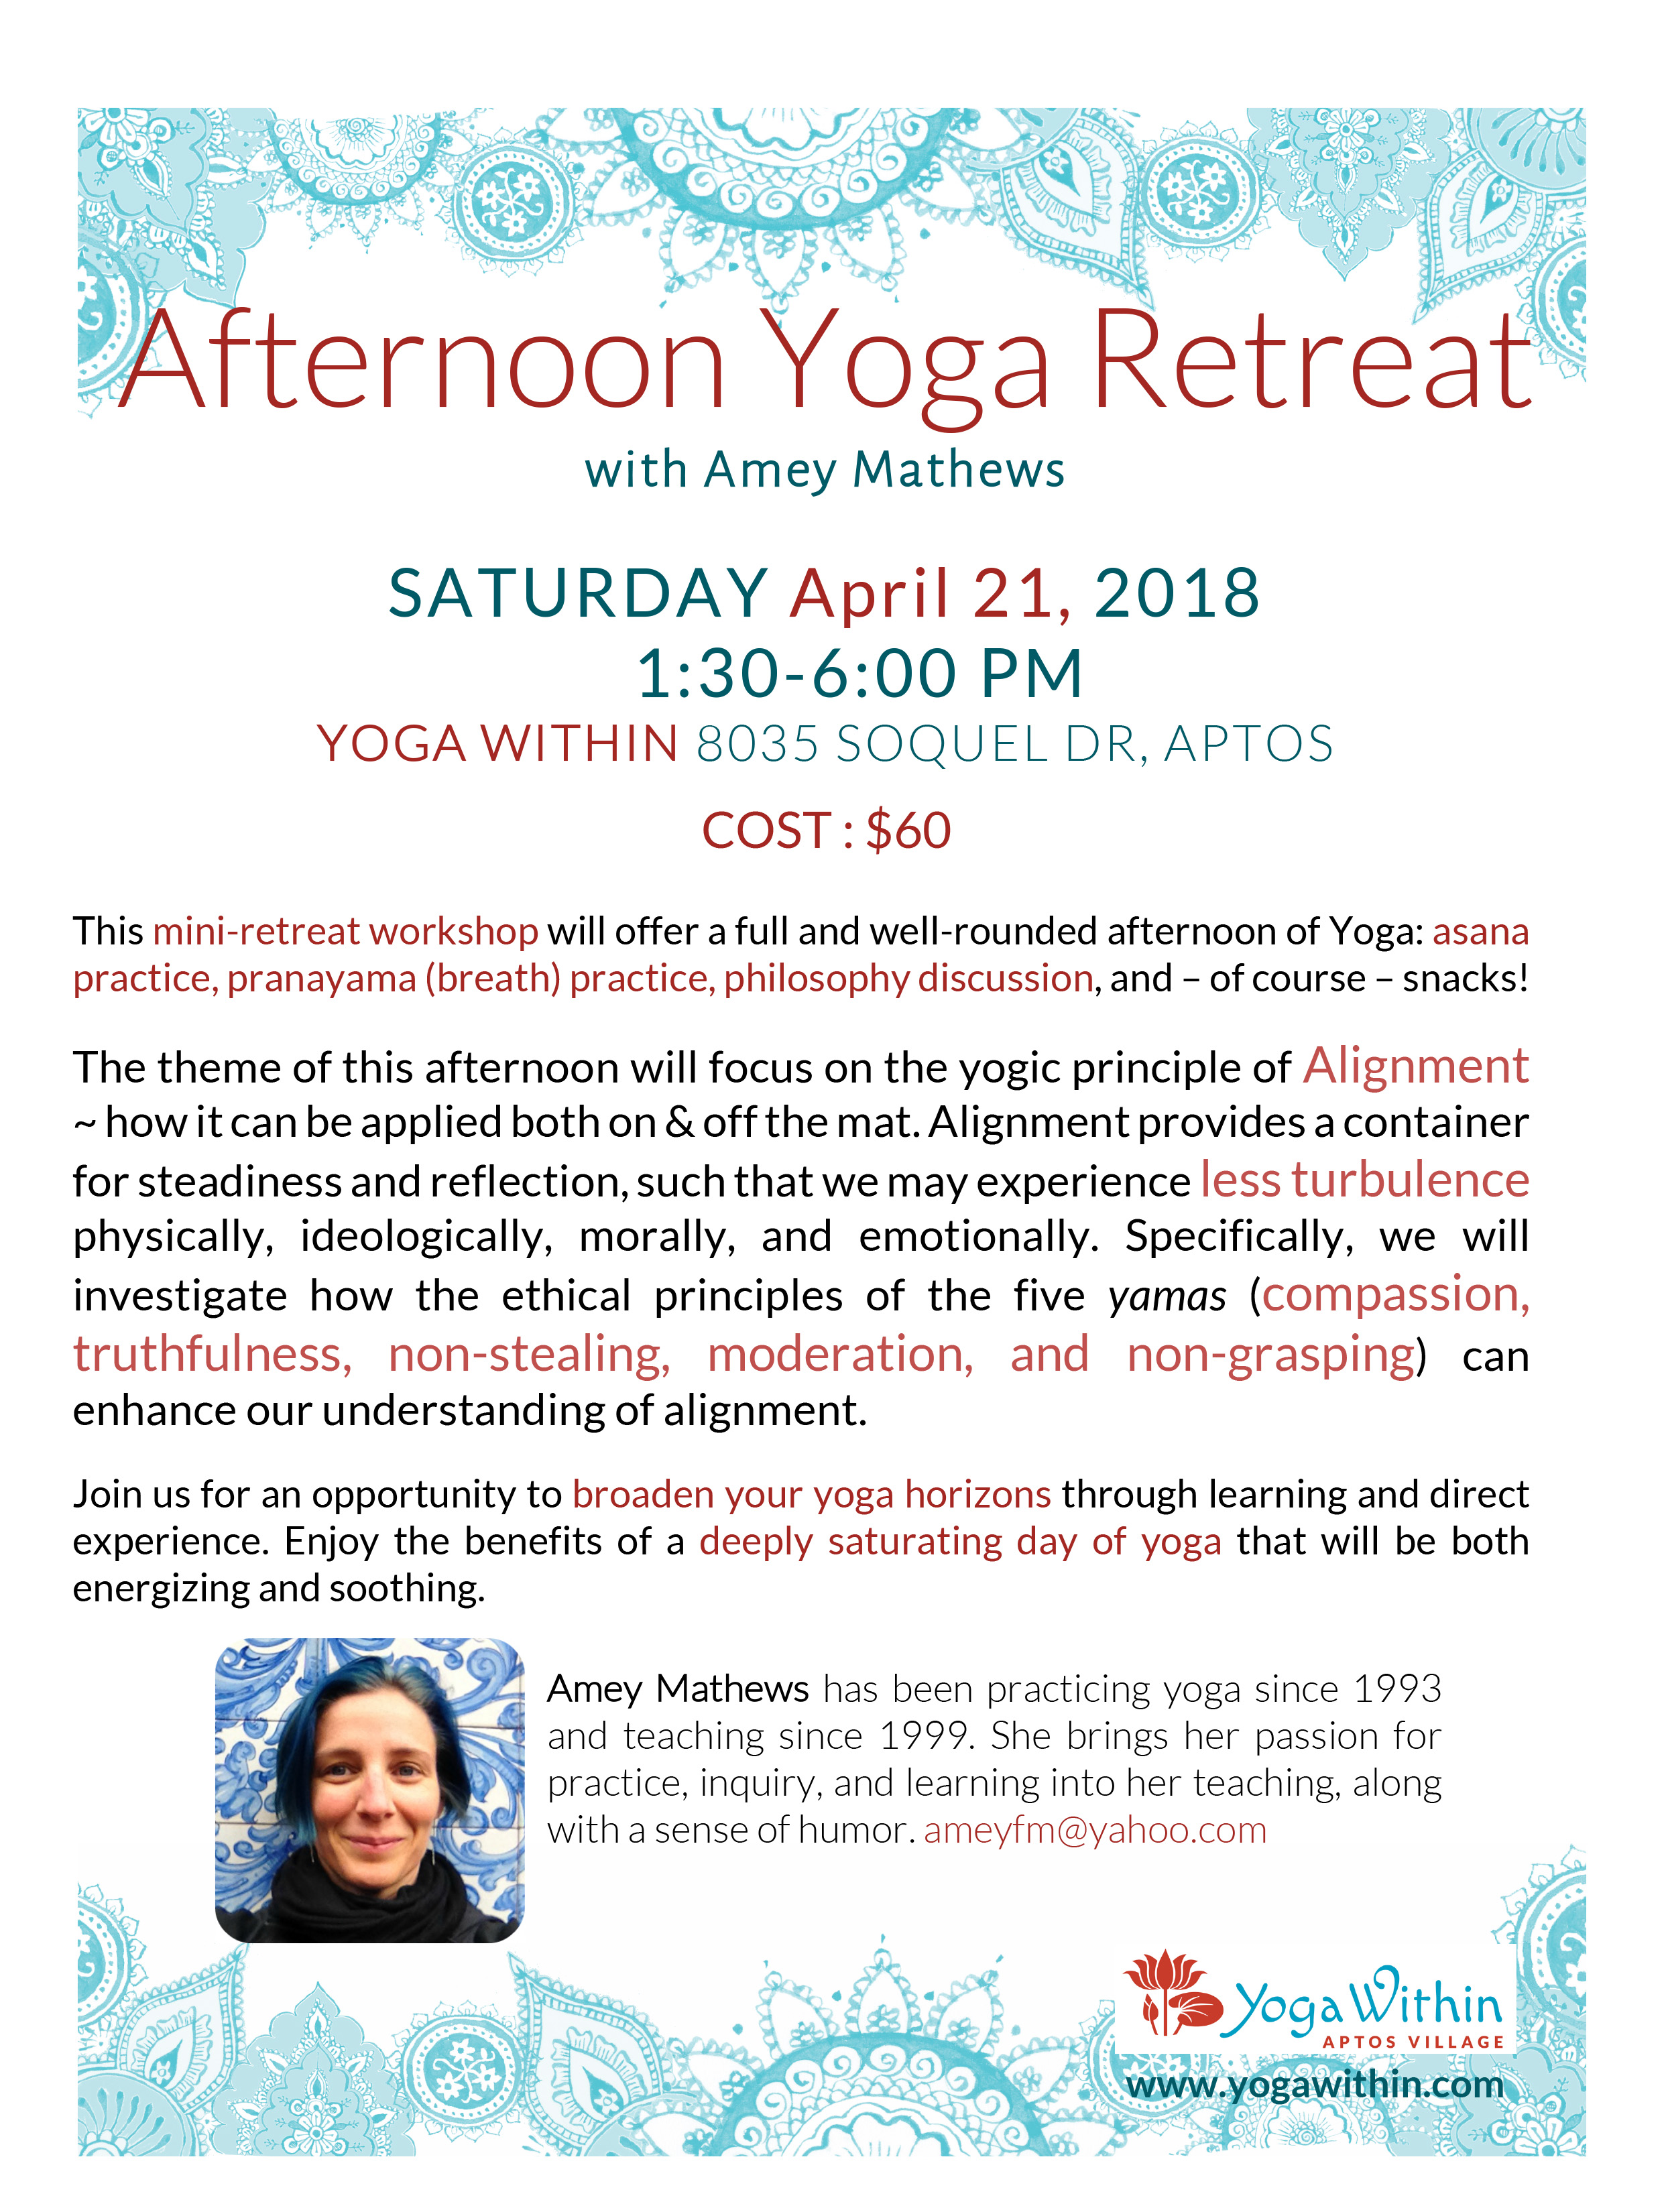 Microsoft Word - Afternoon Yoga Retreat April 2018.docx